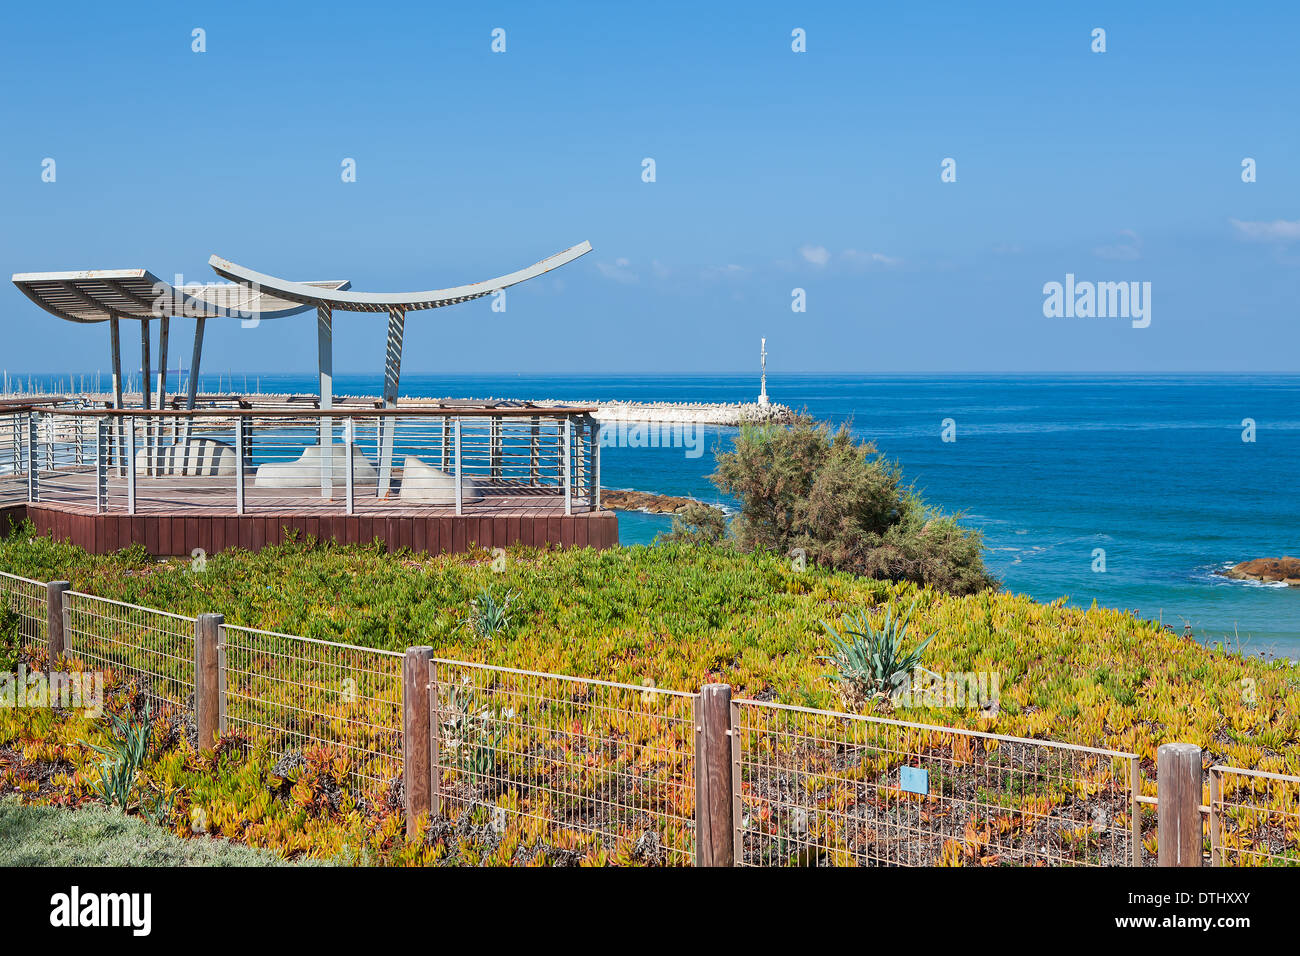 Promenade and viewpoint overlooking calm Mediterranean sea in Ashqelon, Israel. Stock Photo